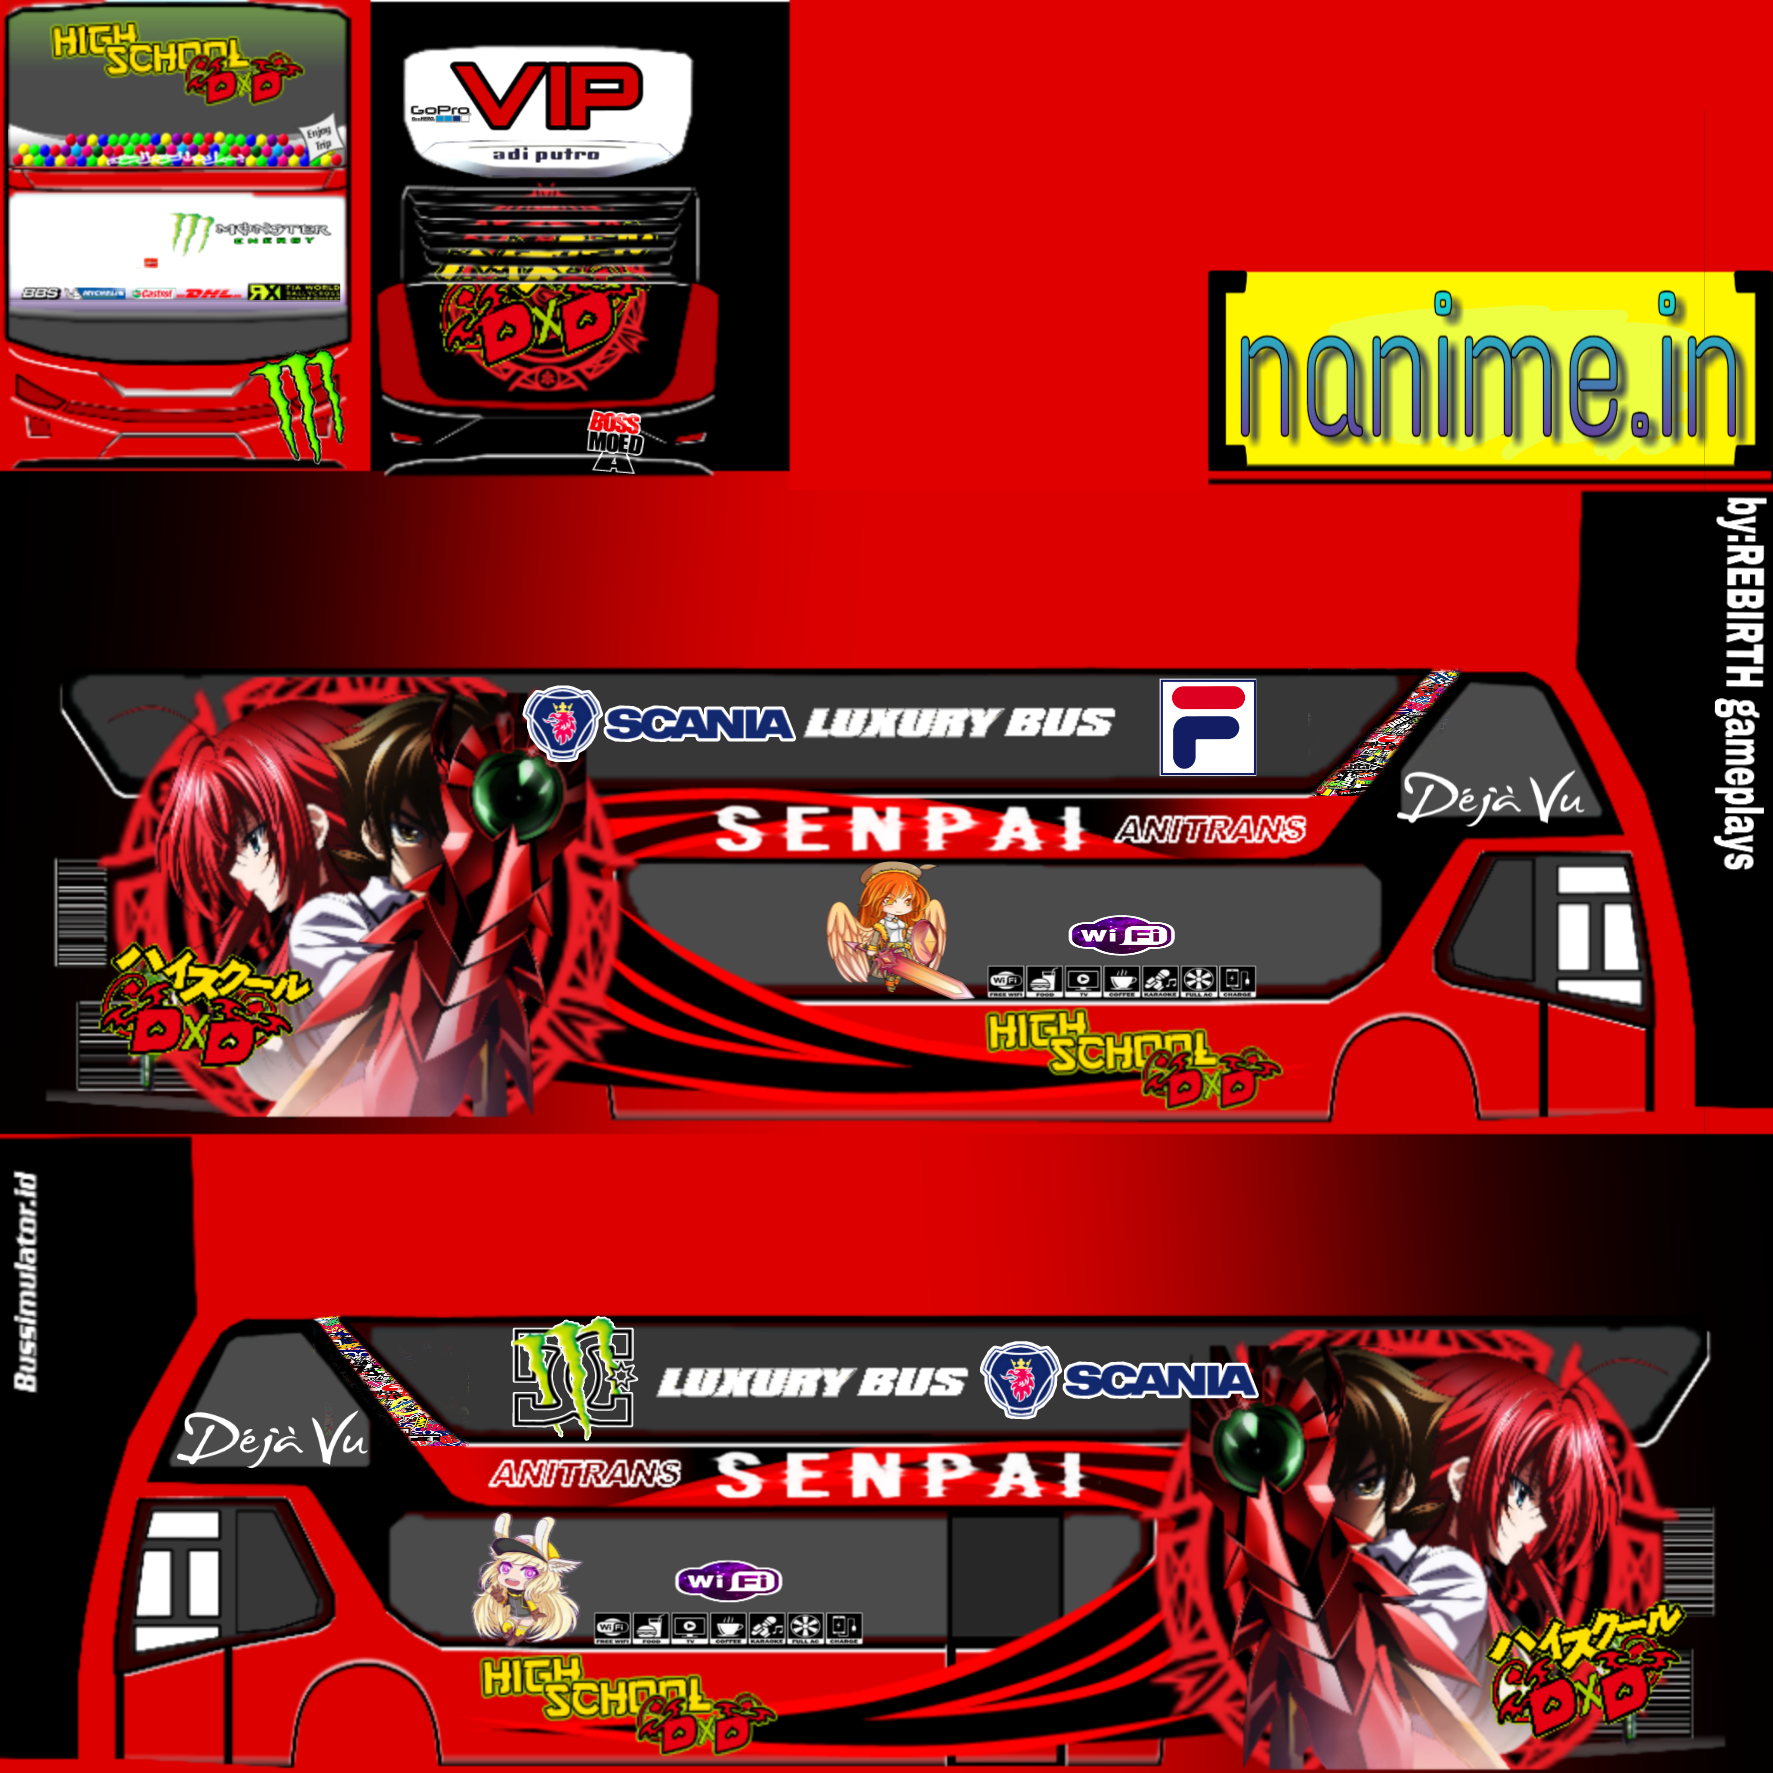 freetoedit bussid livery sdd anime high school dxd